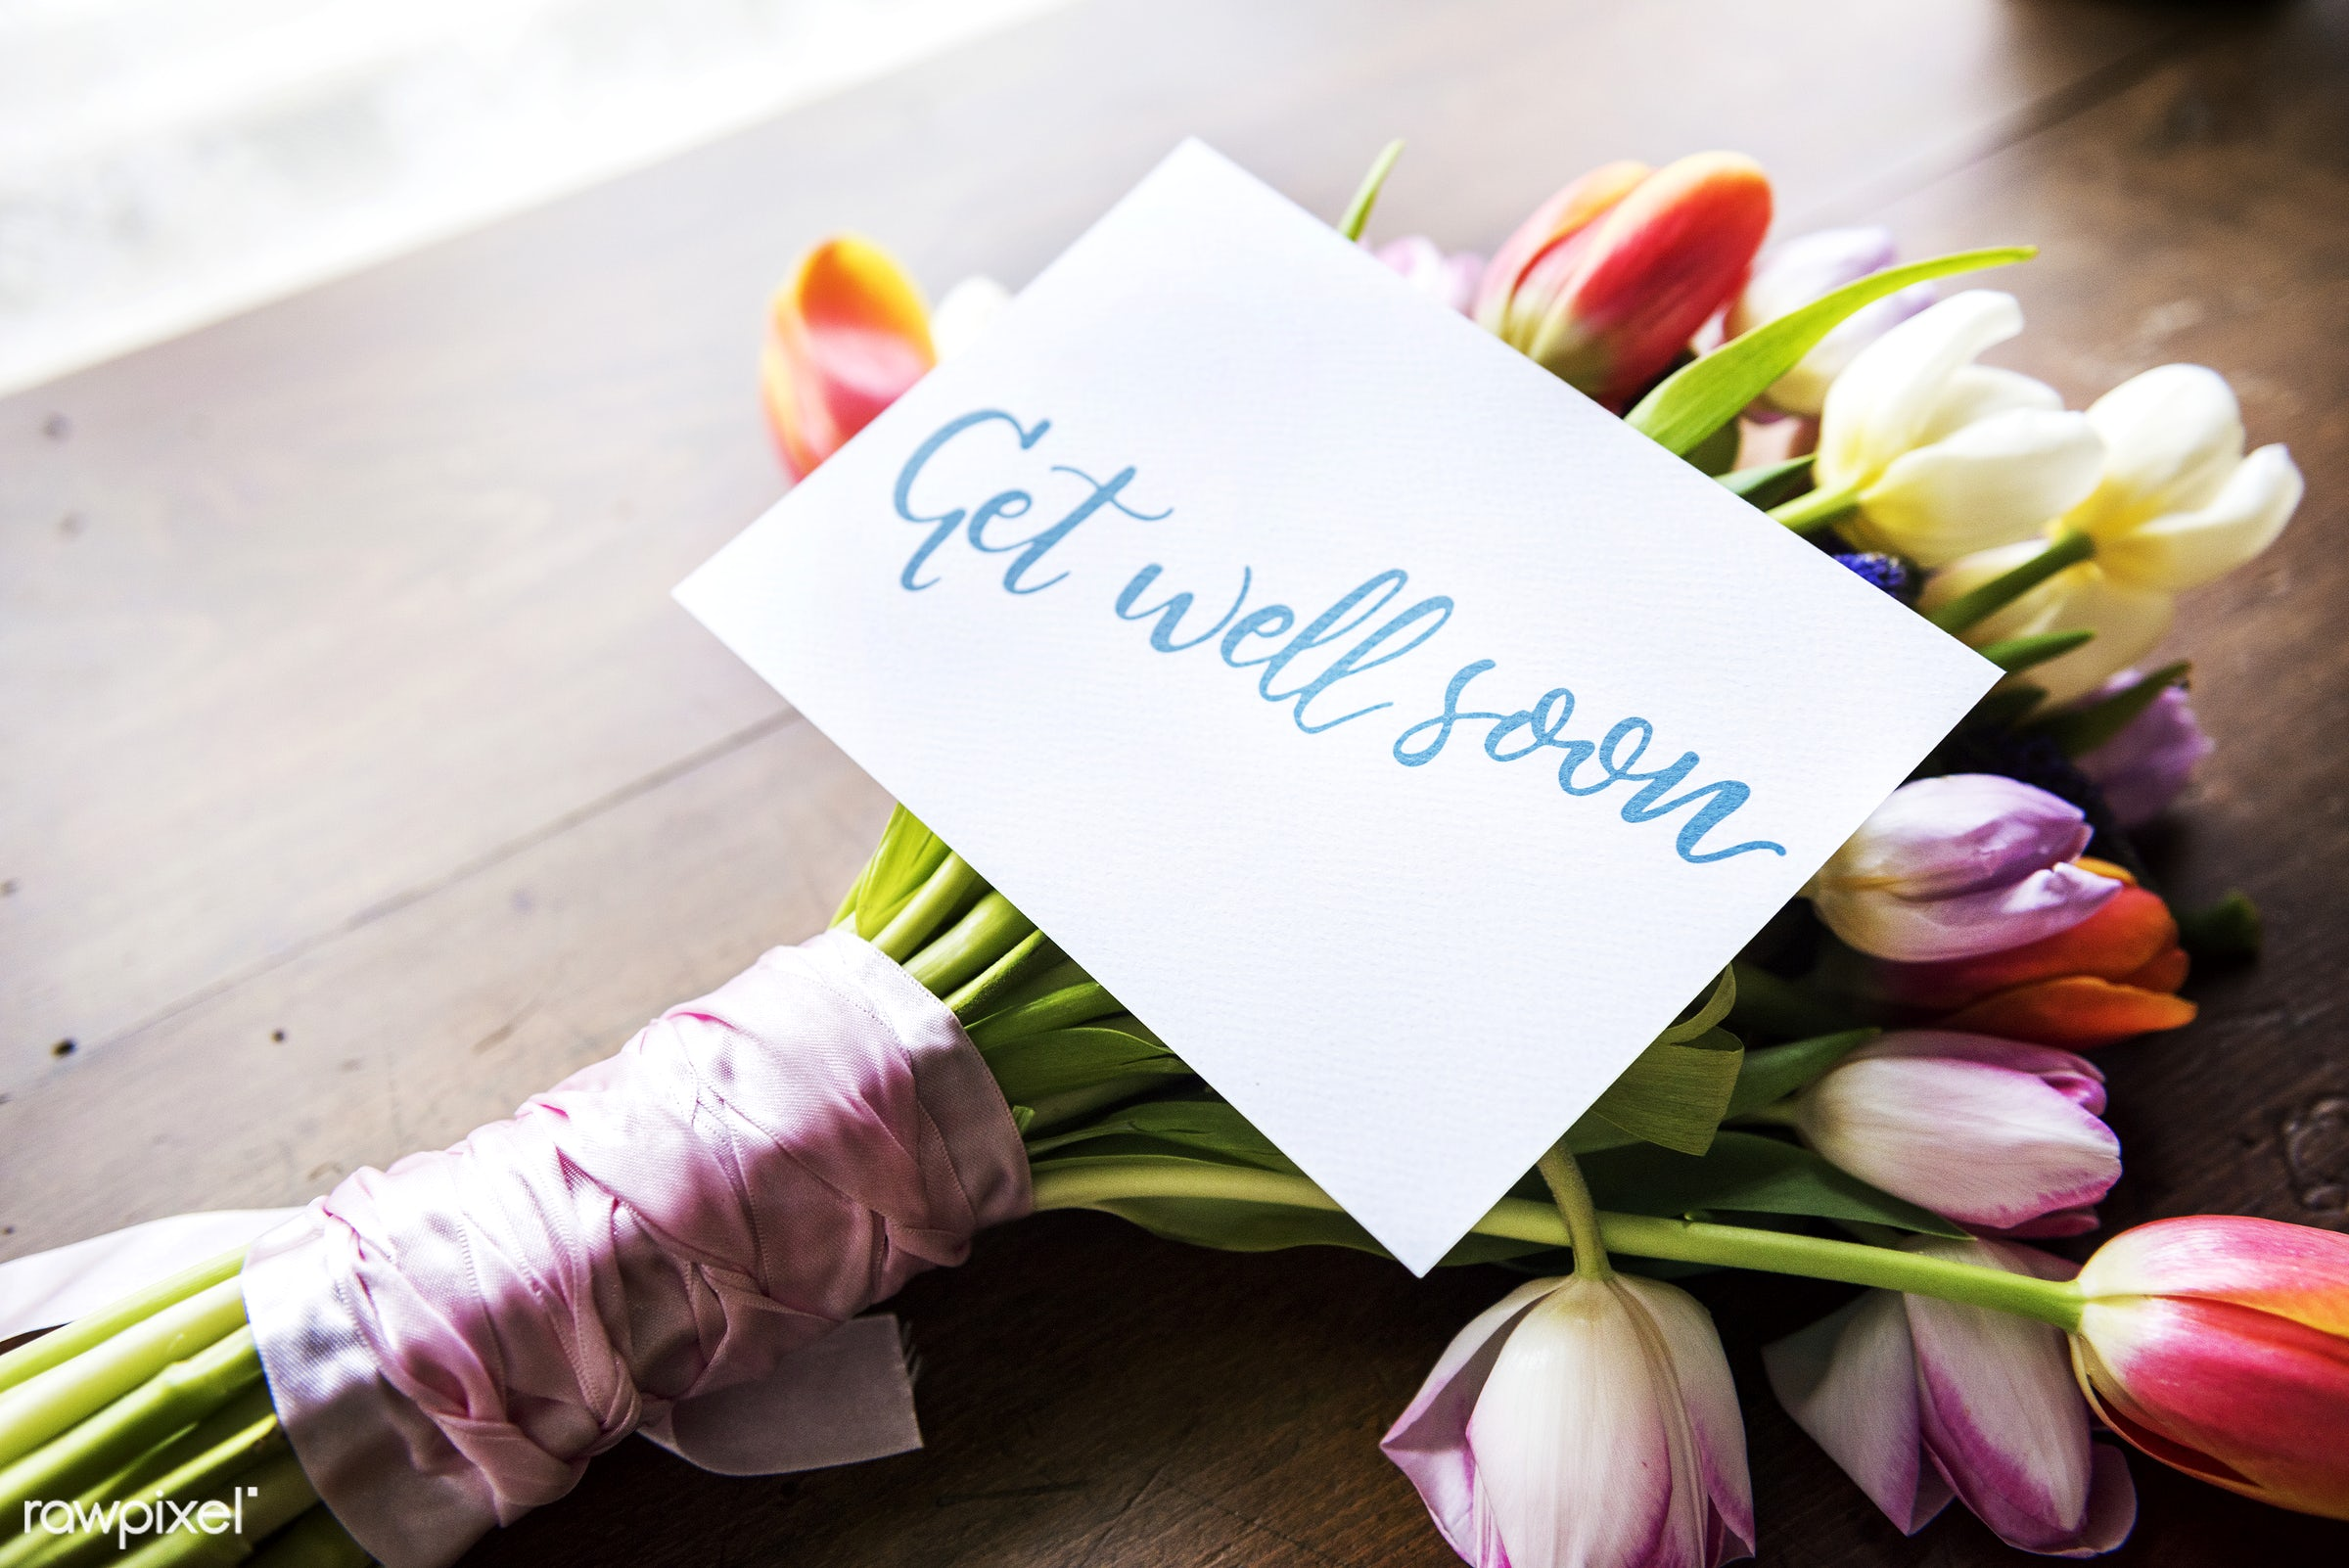 Tulips Flowers Bouquet with Get Well Soon Wishing Card - tulip, arrangement, attractive, beautiful, bloom, blooming, blossom...